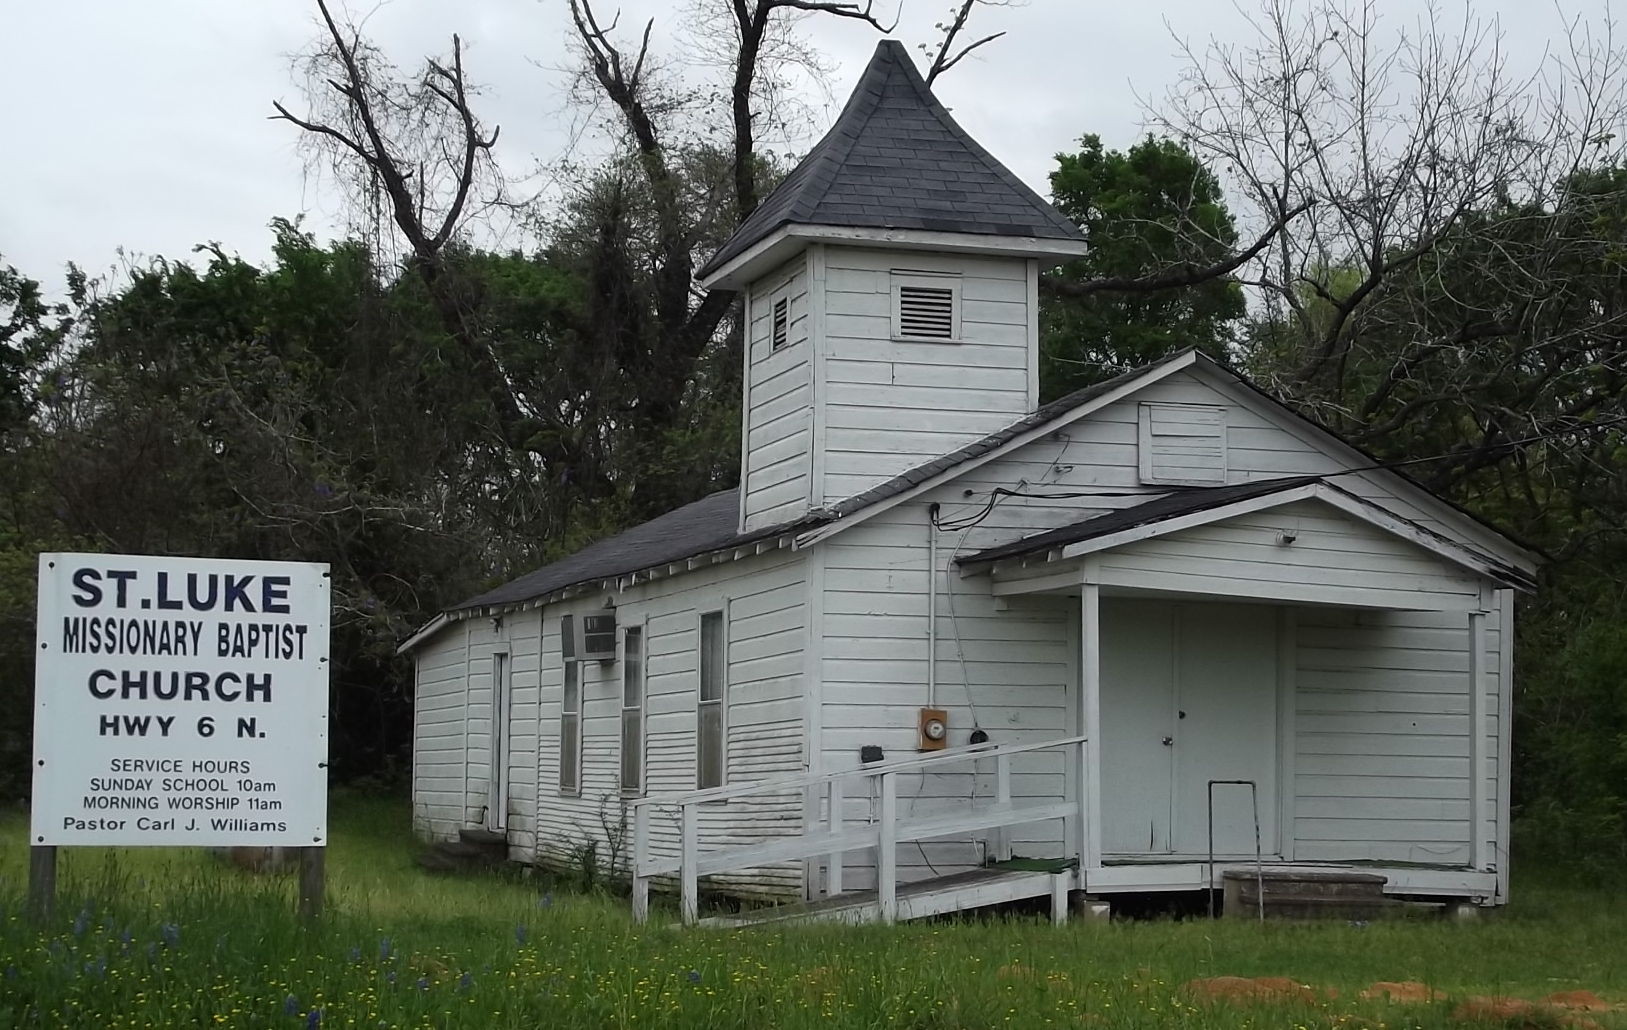 St Luke's Missionary Baptist Church